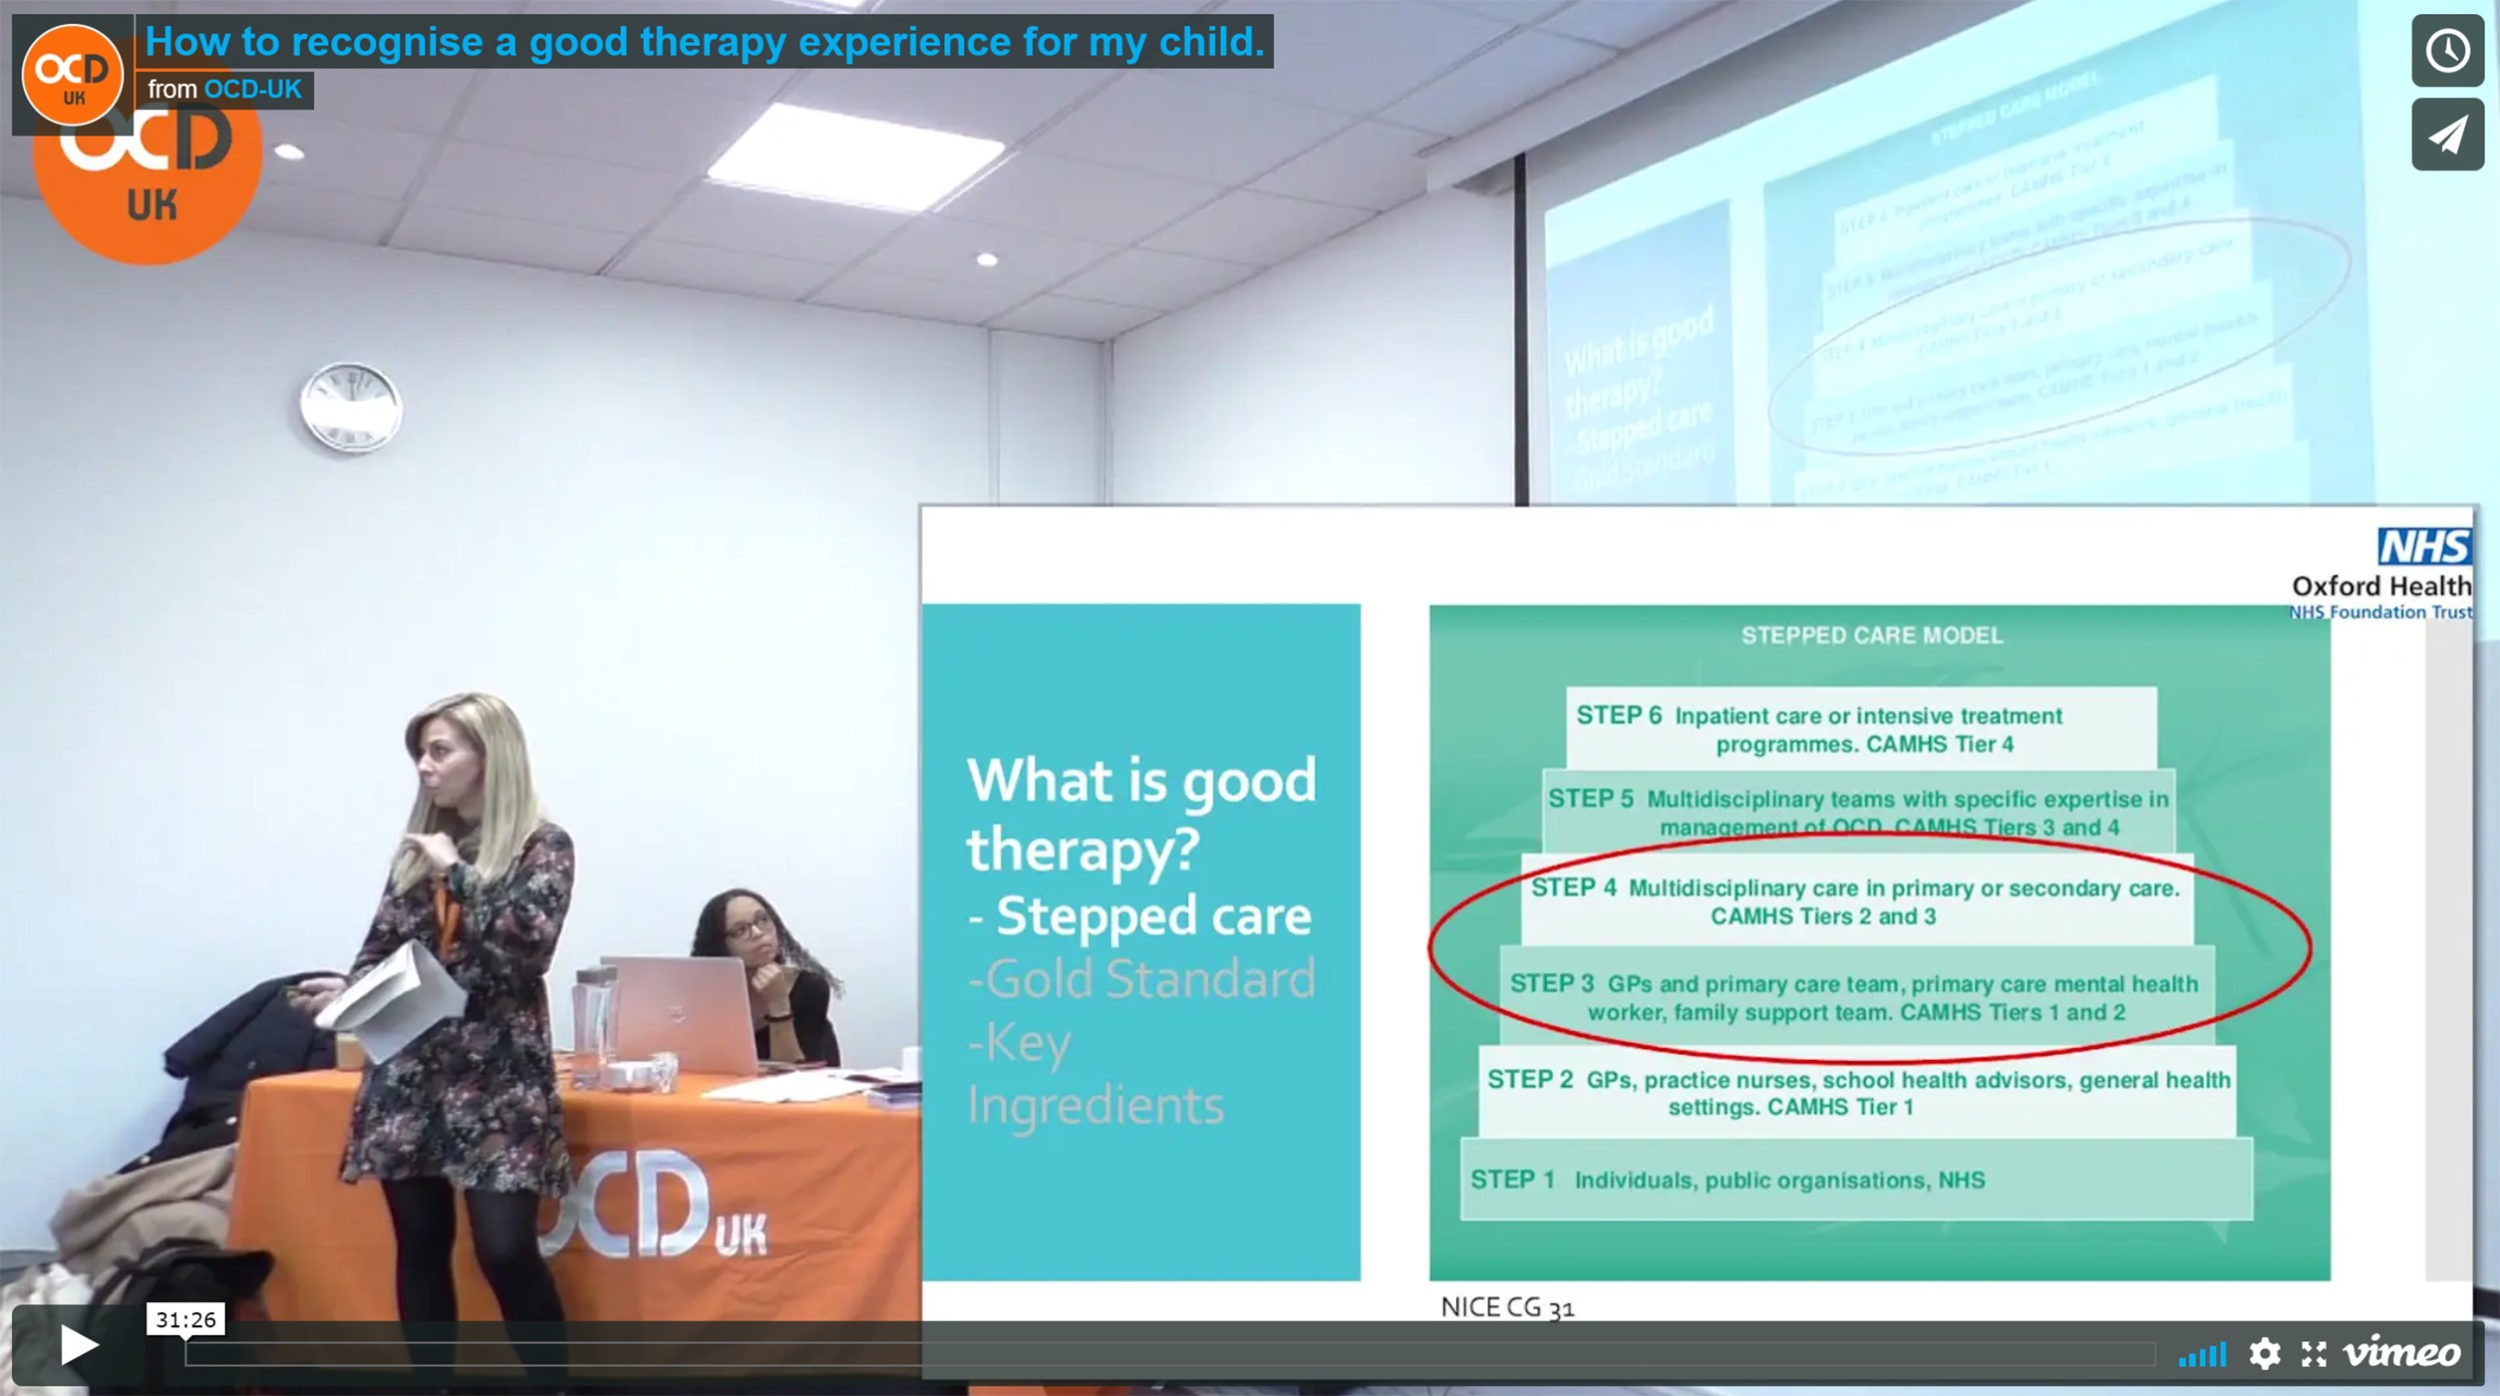 Image shows Sasha Walters talking to the audience at the 2019 OCD-UK conference looking at the projector screen alongside a screenshot of the slide.